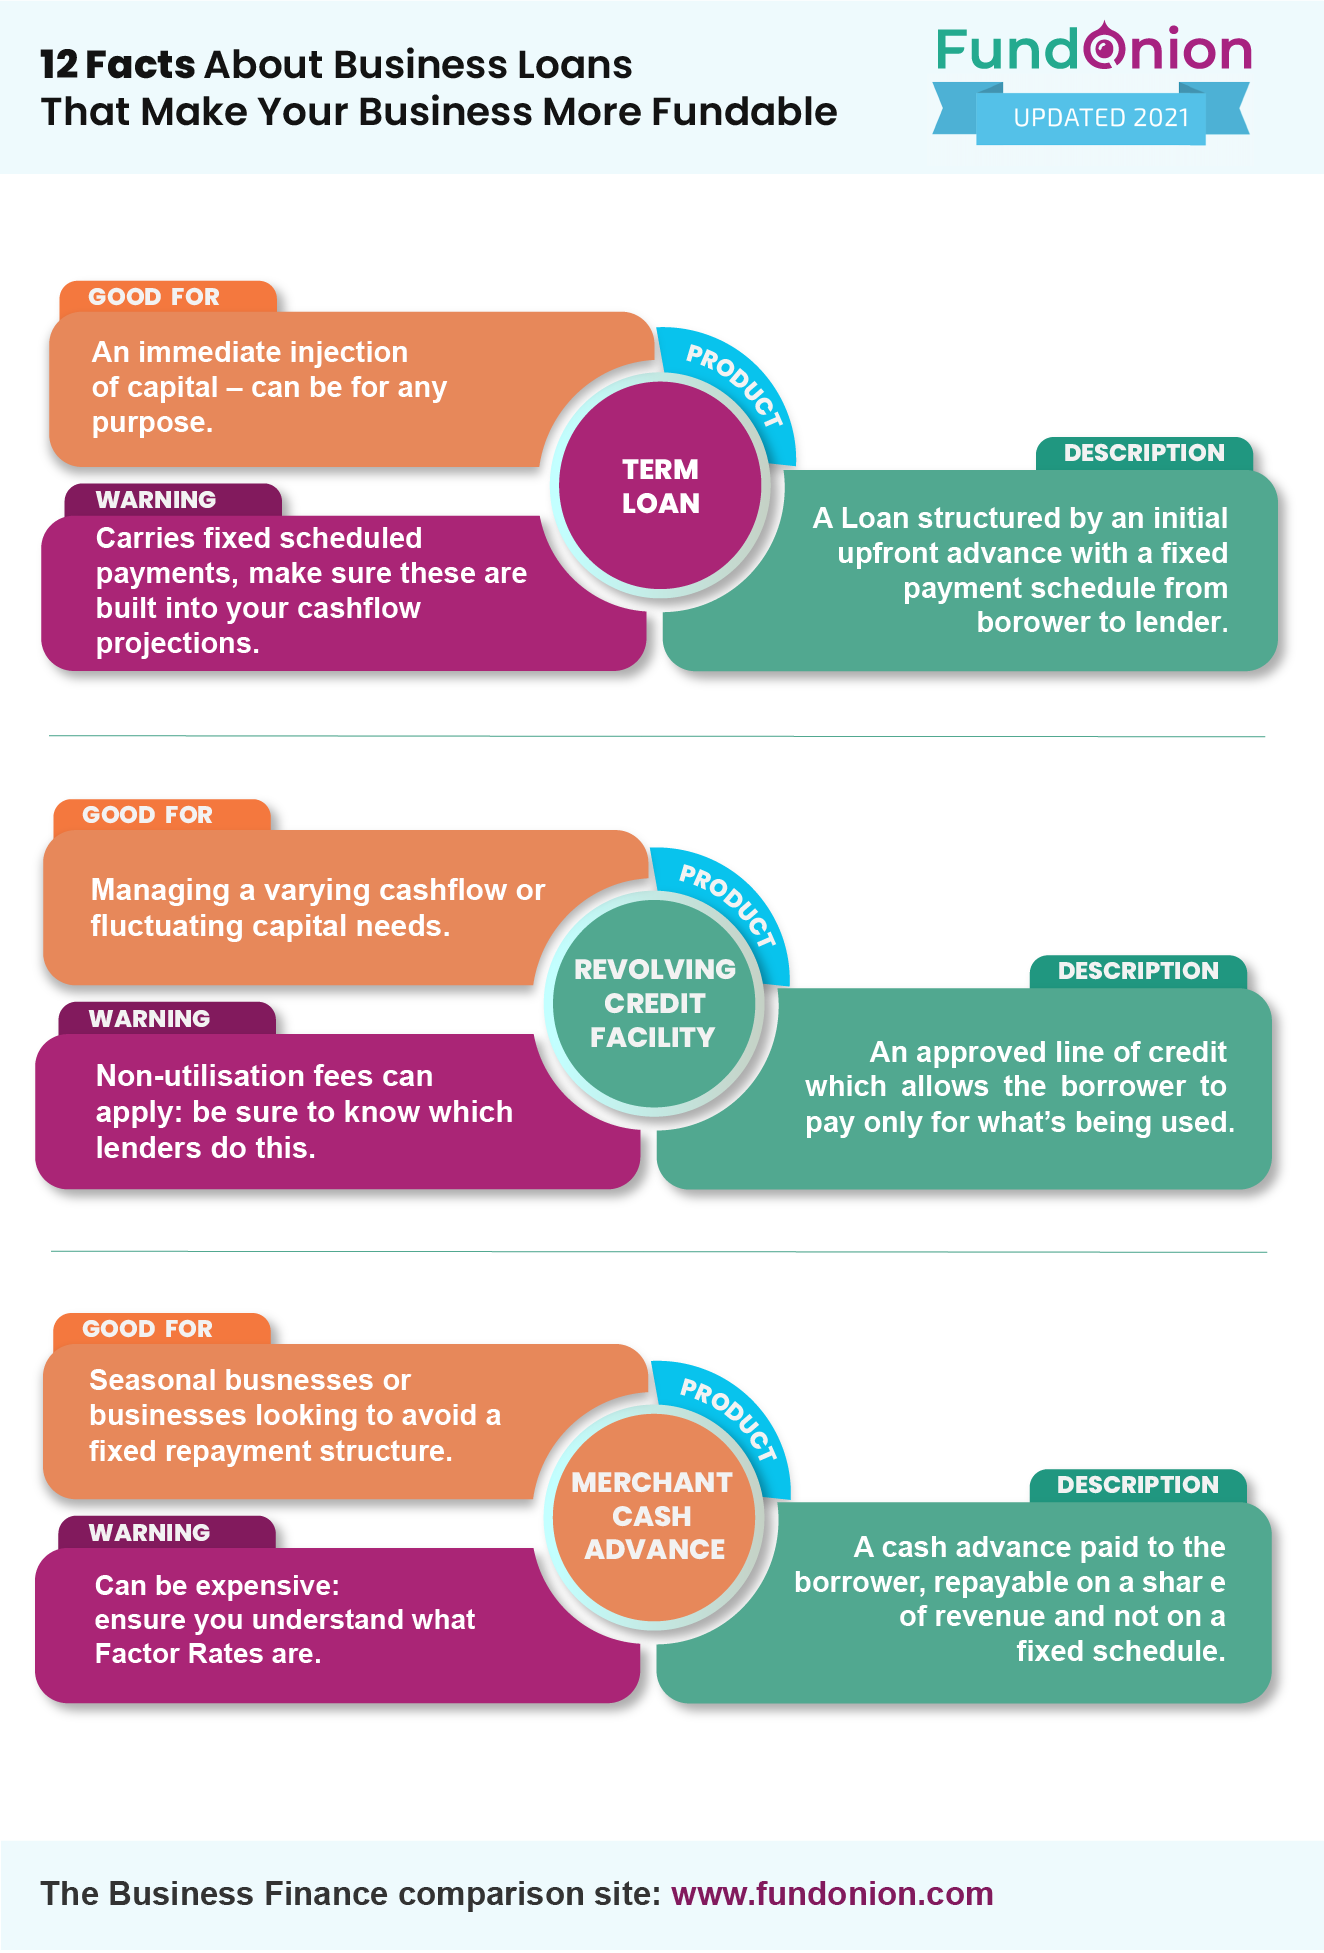 12 Facts About Business Loans That Make Your Business More Fundable_Infographic